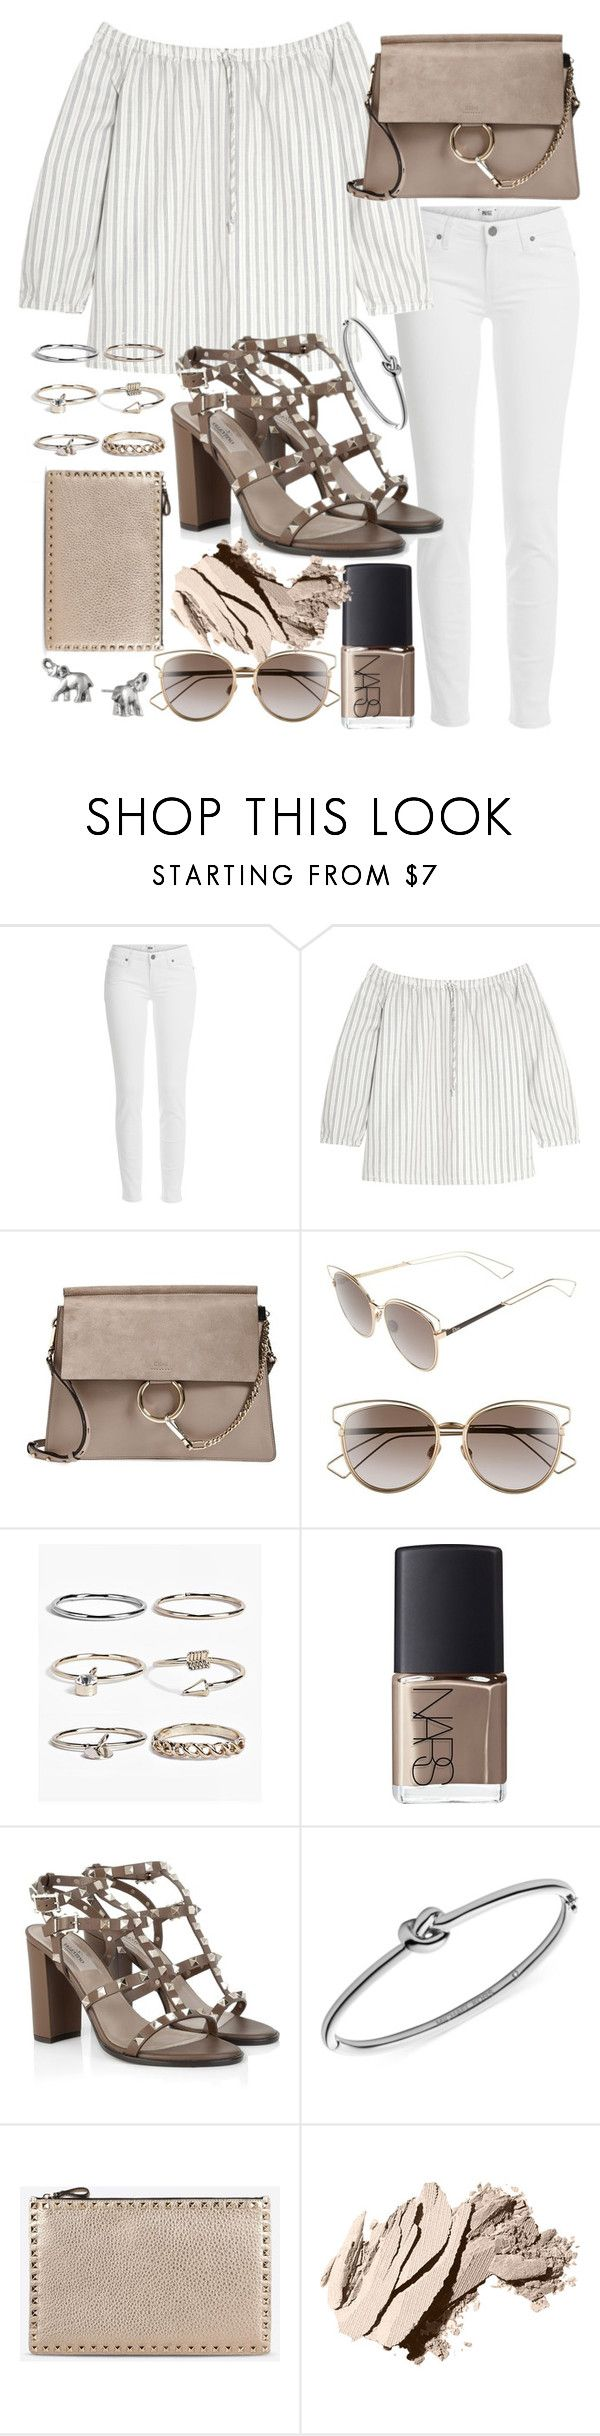 """Untitled #19662"" by florencia95 ❤ liked on Polyvore featuring Paige Denim, Madewell, Chloé, Christian Dior, Boohoo, NARS Cosmetics, Valentino, Michael Kors, Bobbi Brown Cosmetics and Lonna & Lilly"